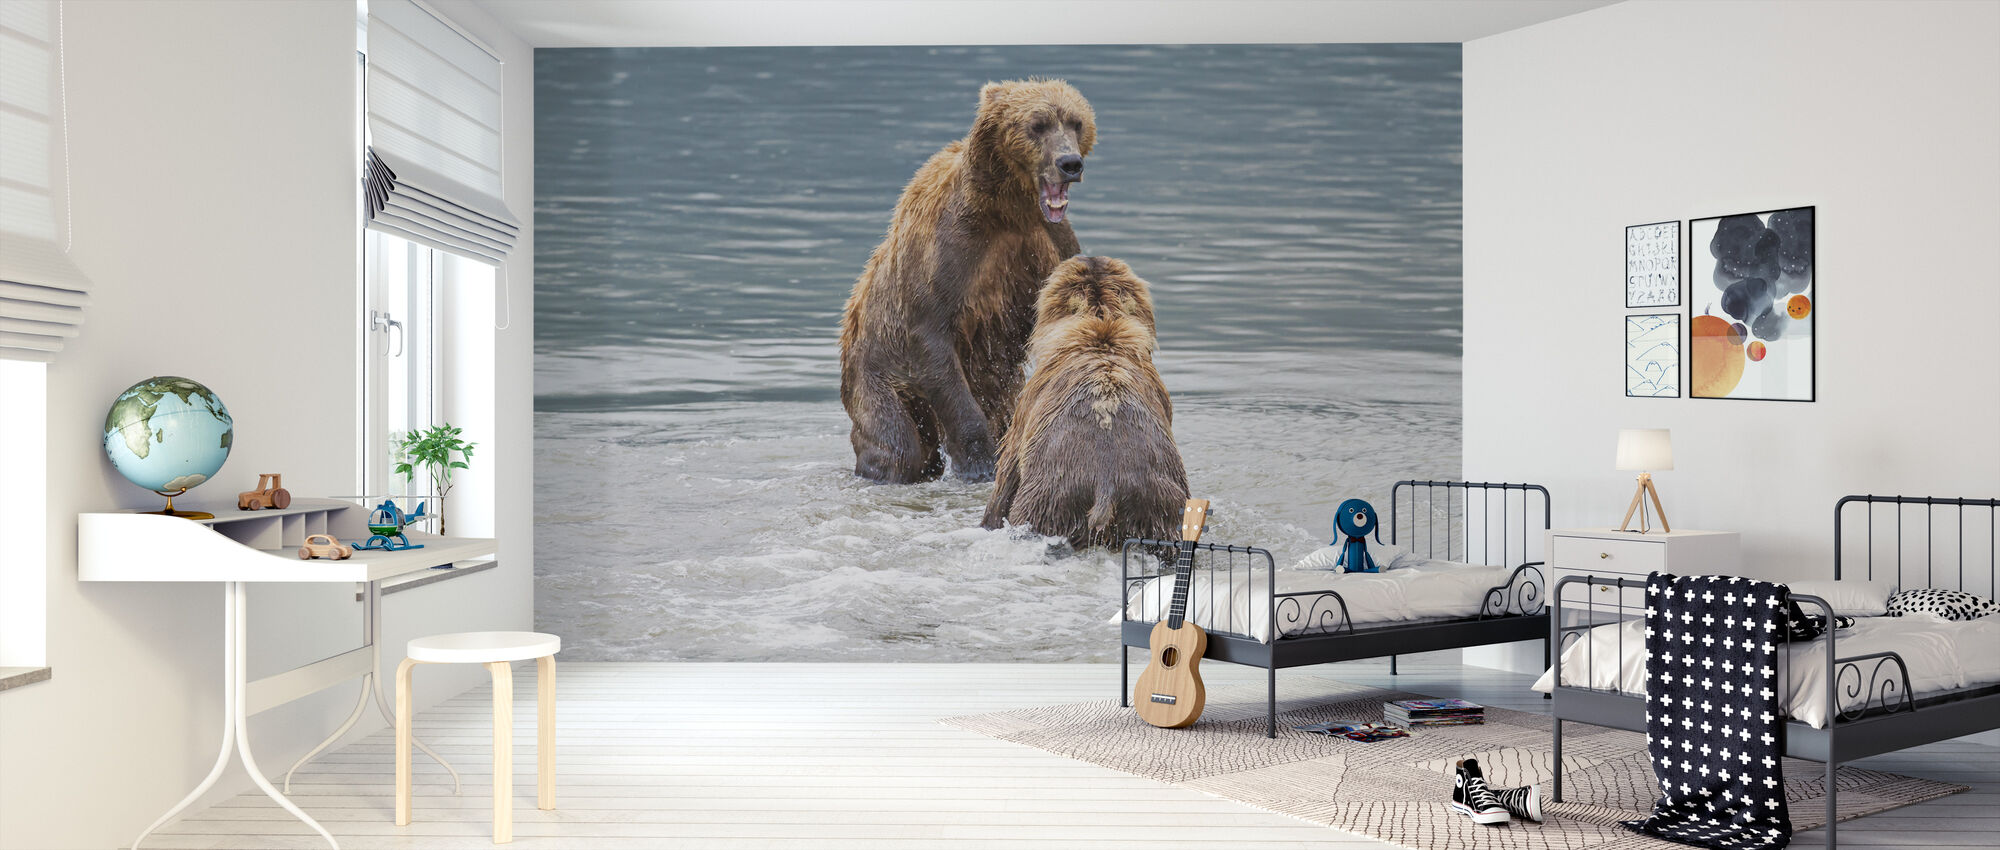 Two Bears in the Lake - Wallpaper - Kids Room